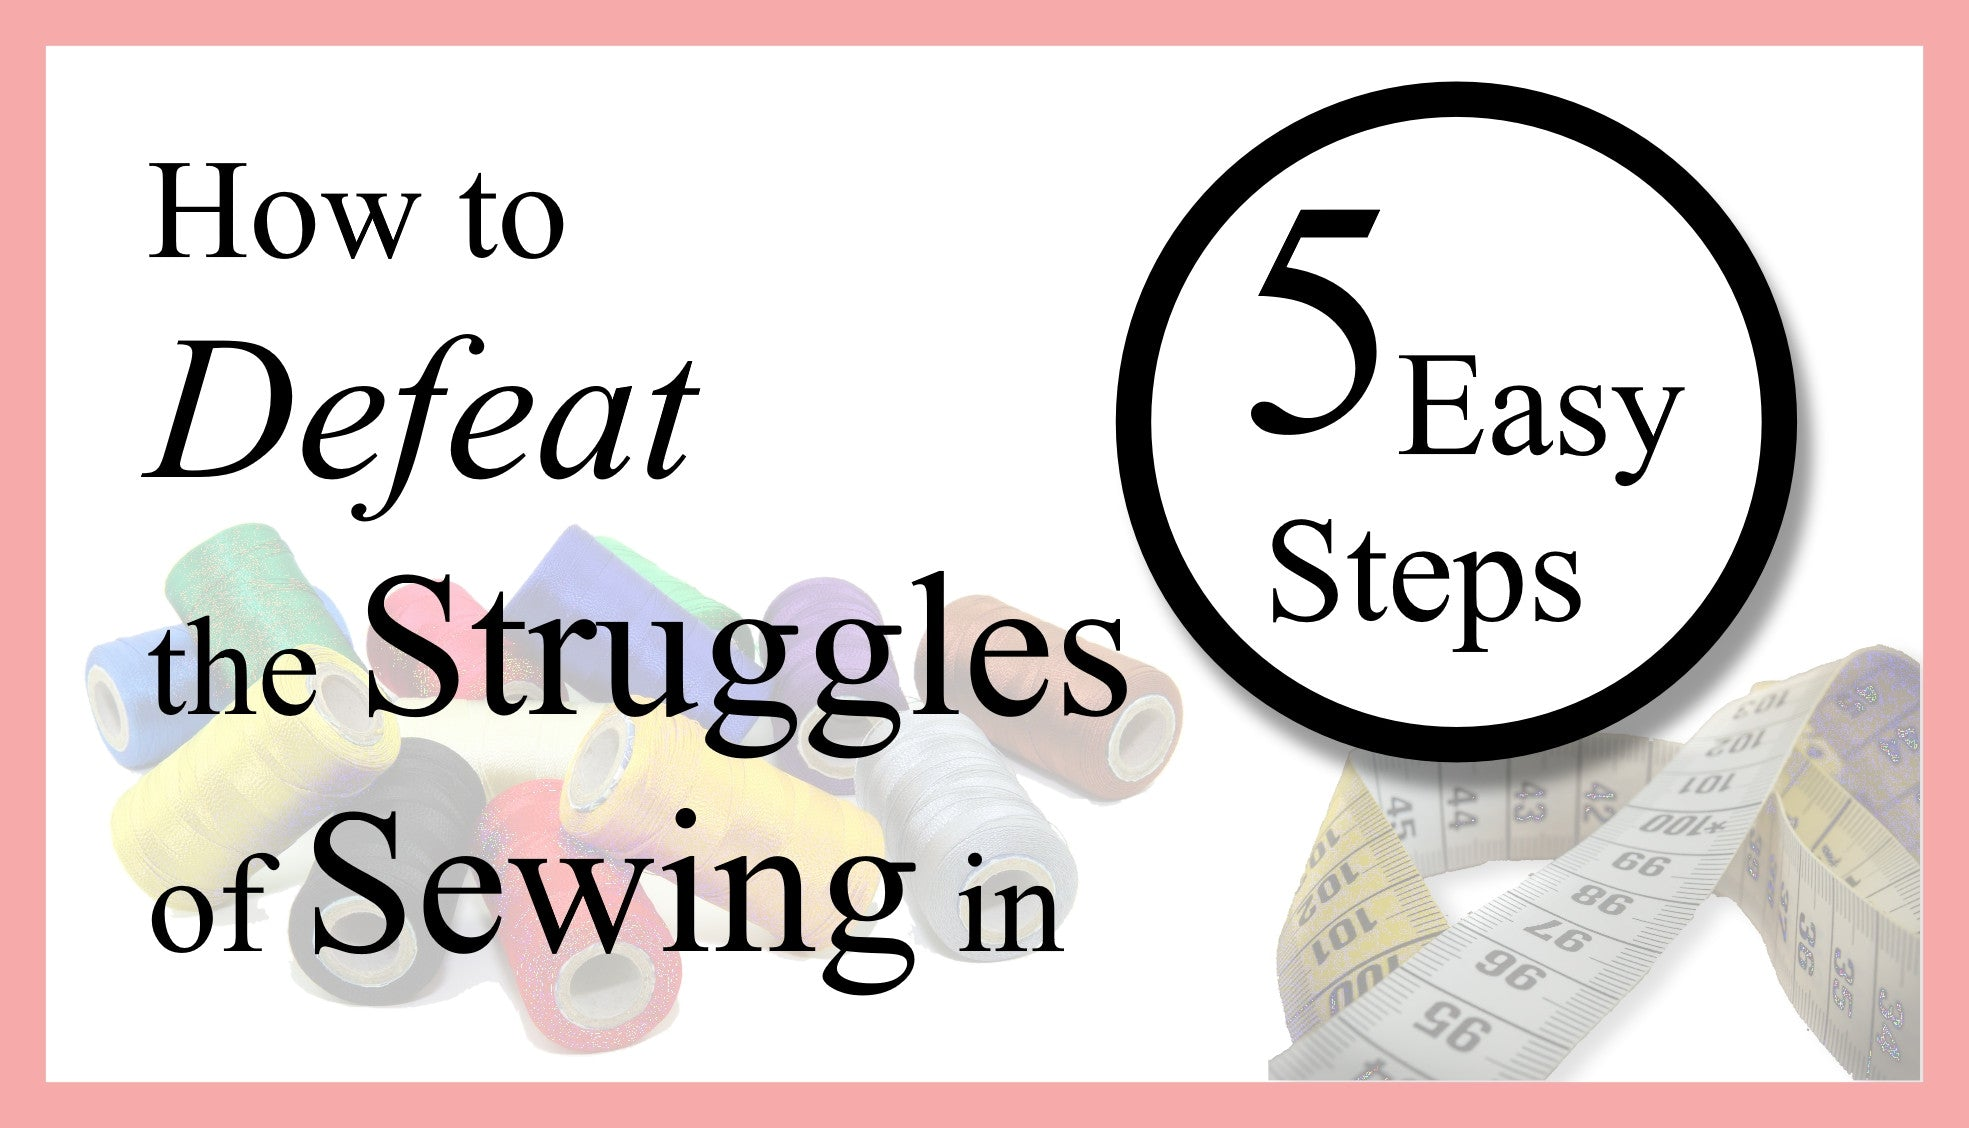 How to Defeat the Struggles of Sewing in 5 Easy Steps